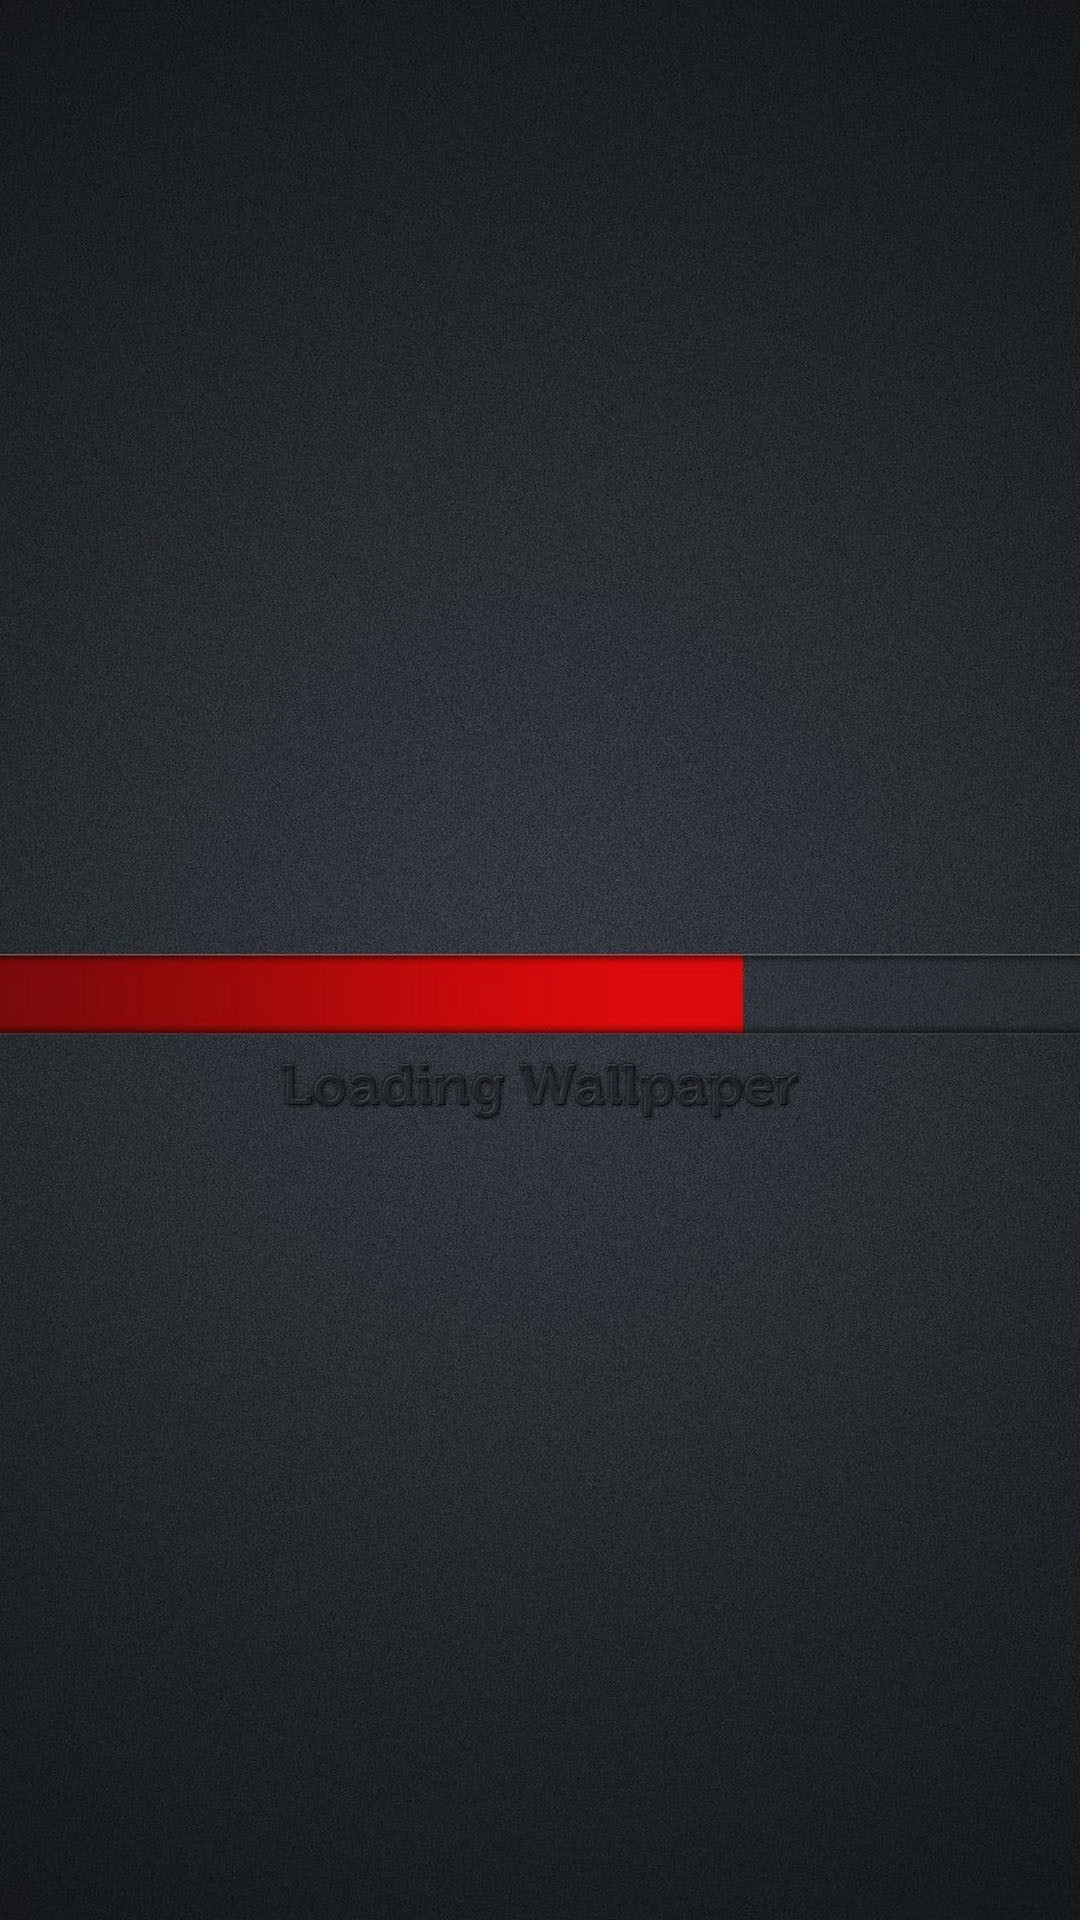 Res: 1080x1920, Loading Wallpaper Red Line Grey Background Android Wallpaper ...